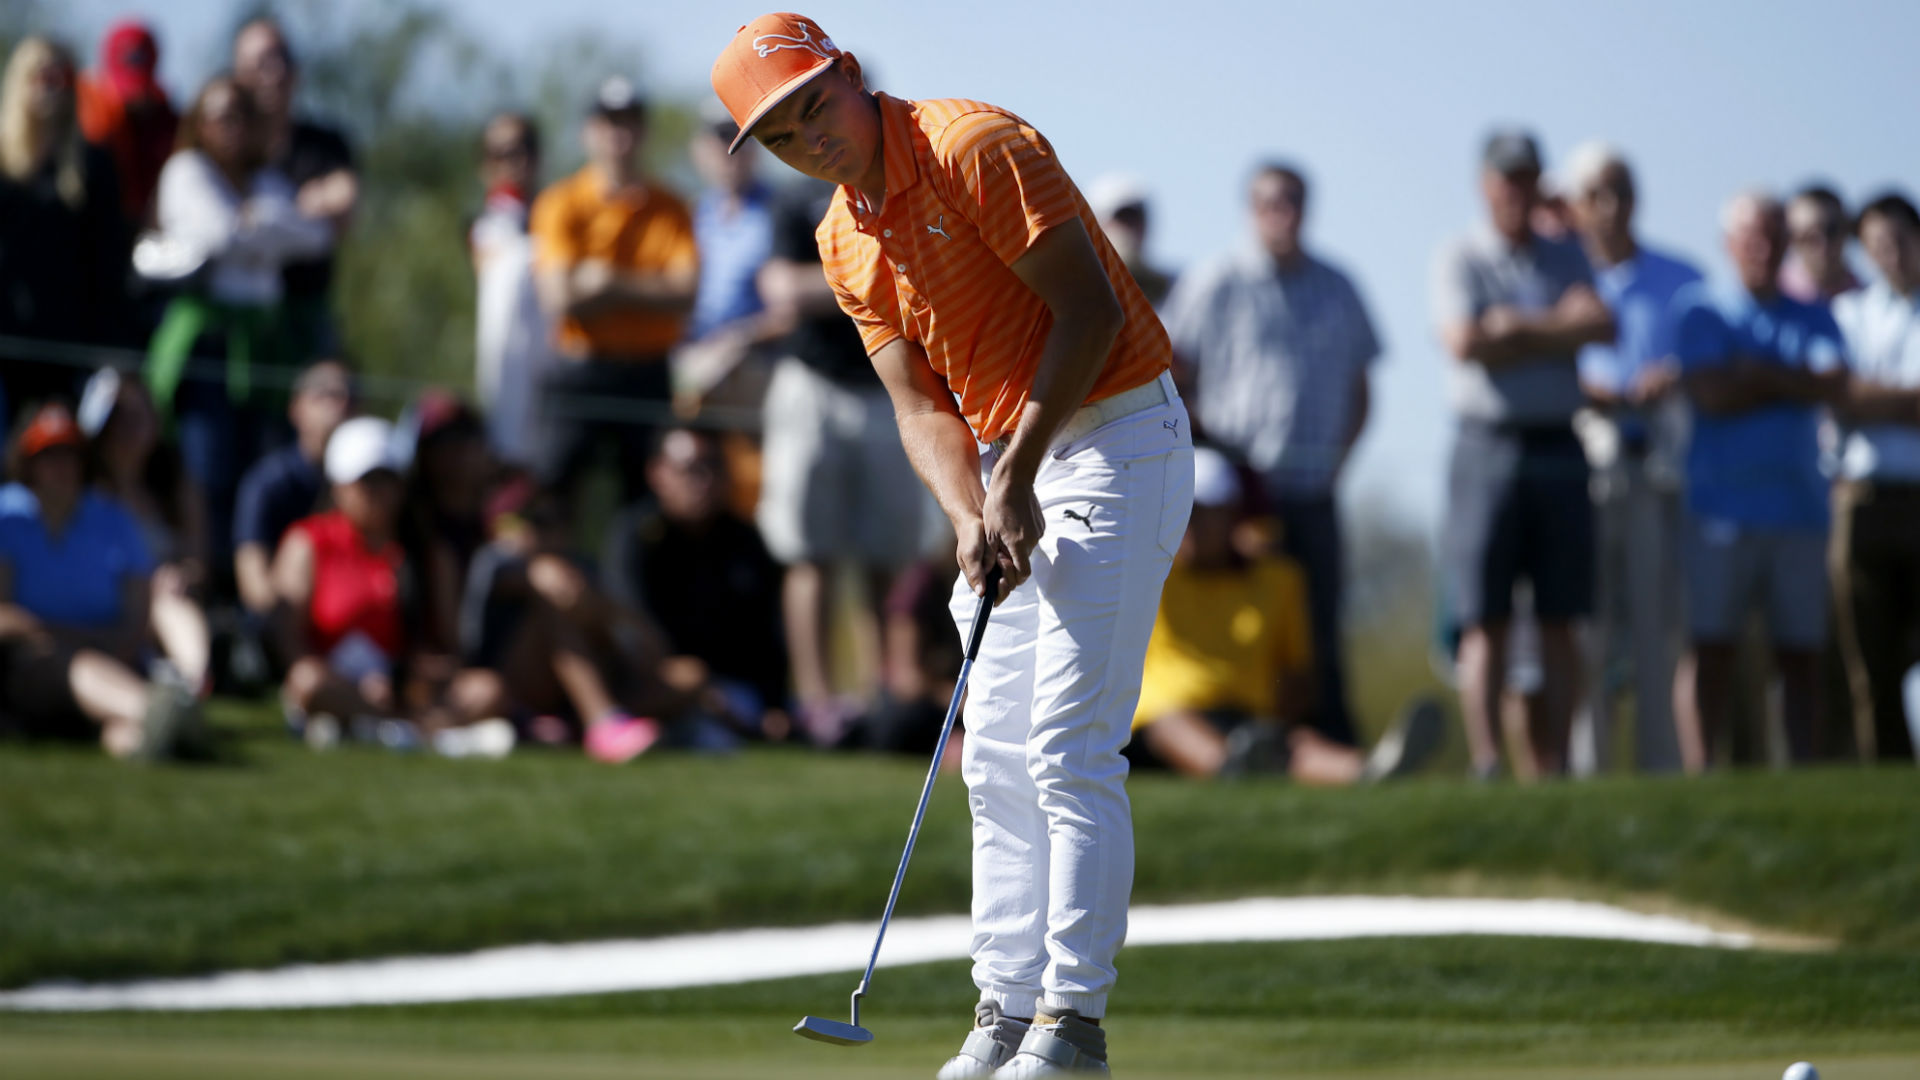 players championship preview: rickie fowler returns to defend his crown